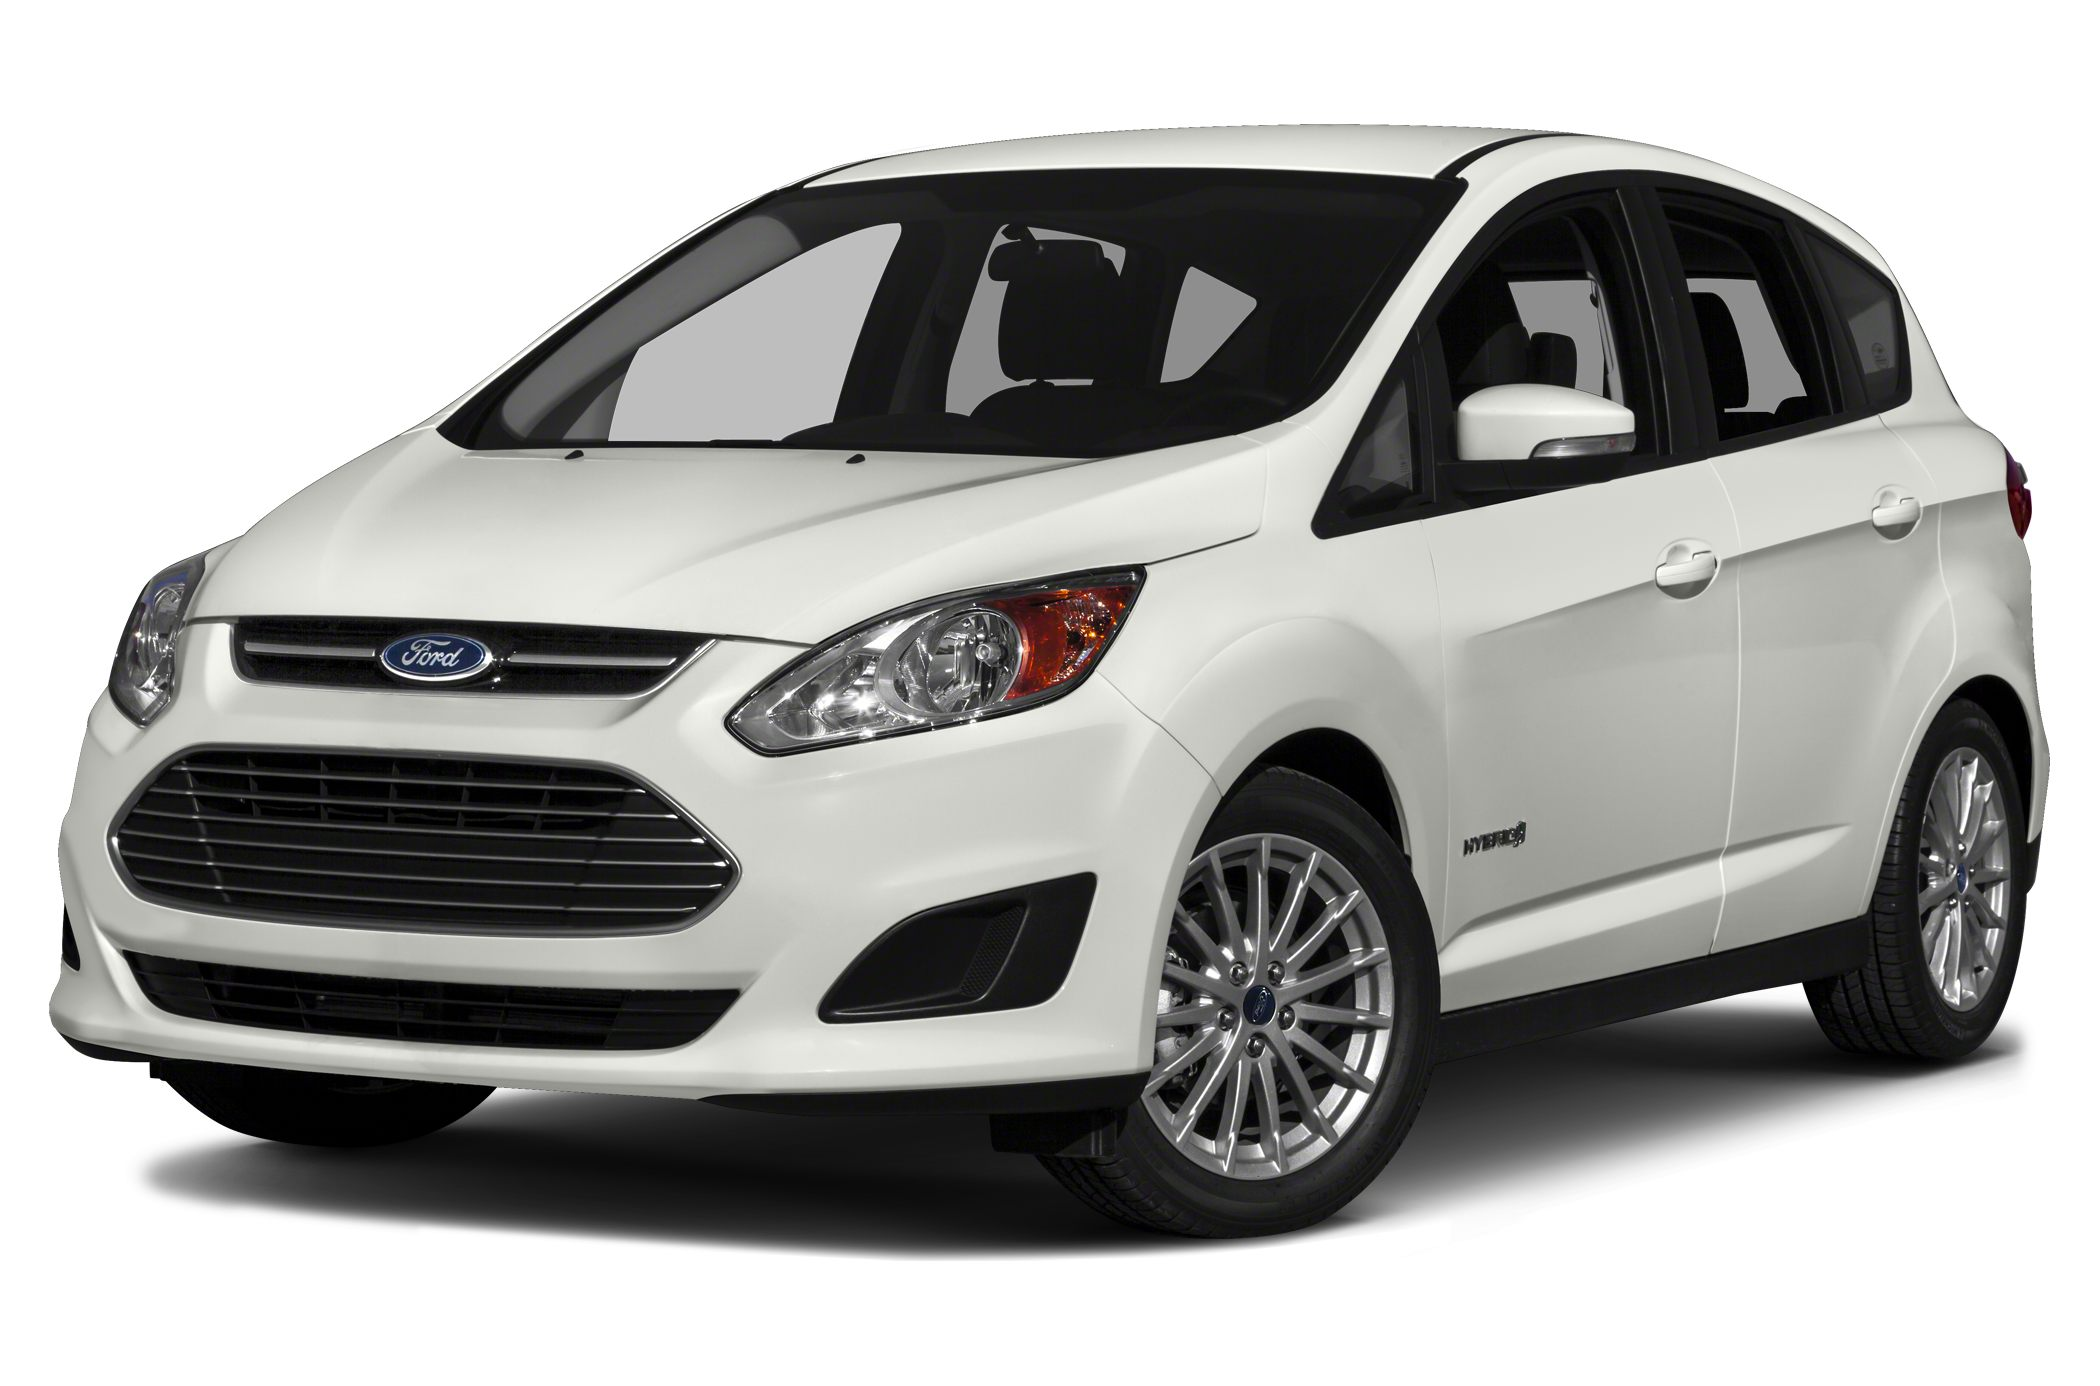 2015 Ford C-Max Hybrid SEL Hatchback for sale in Rockford for $30,390 with 64 miles